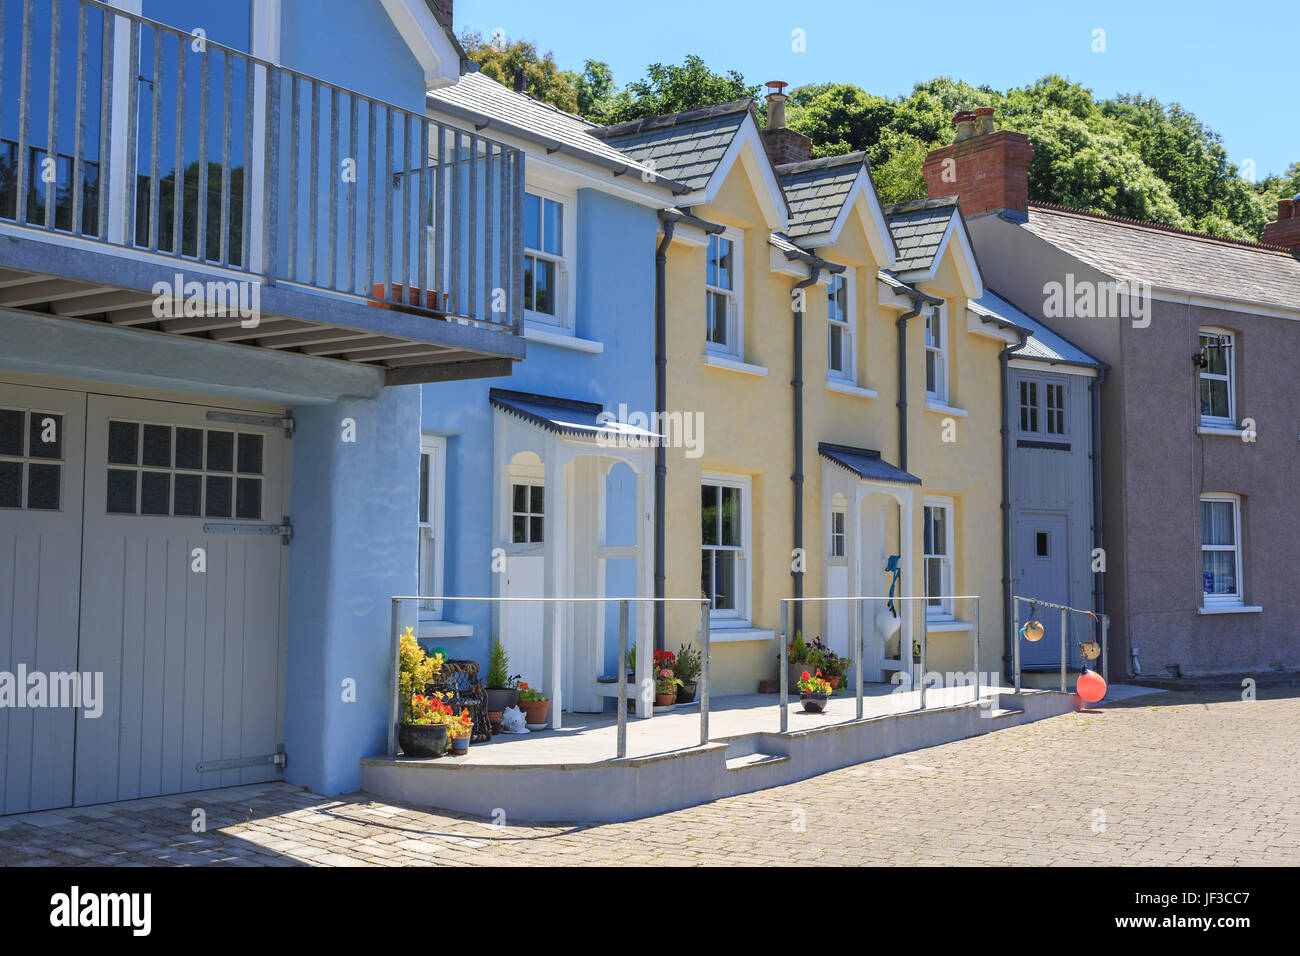 Painted cottages, Lower Fishguard, Pembrokeshire, Wales, UK - Stock Image